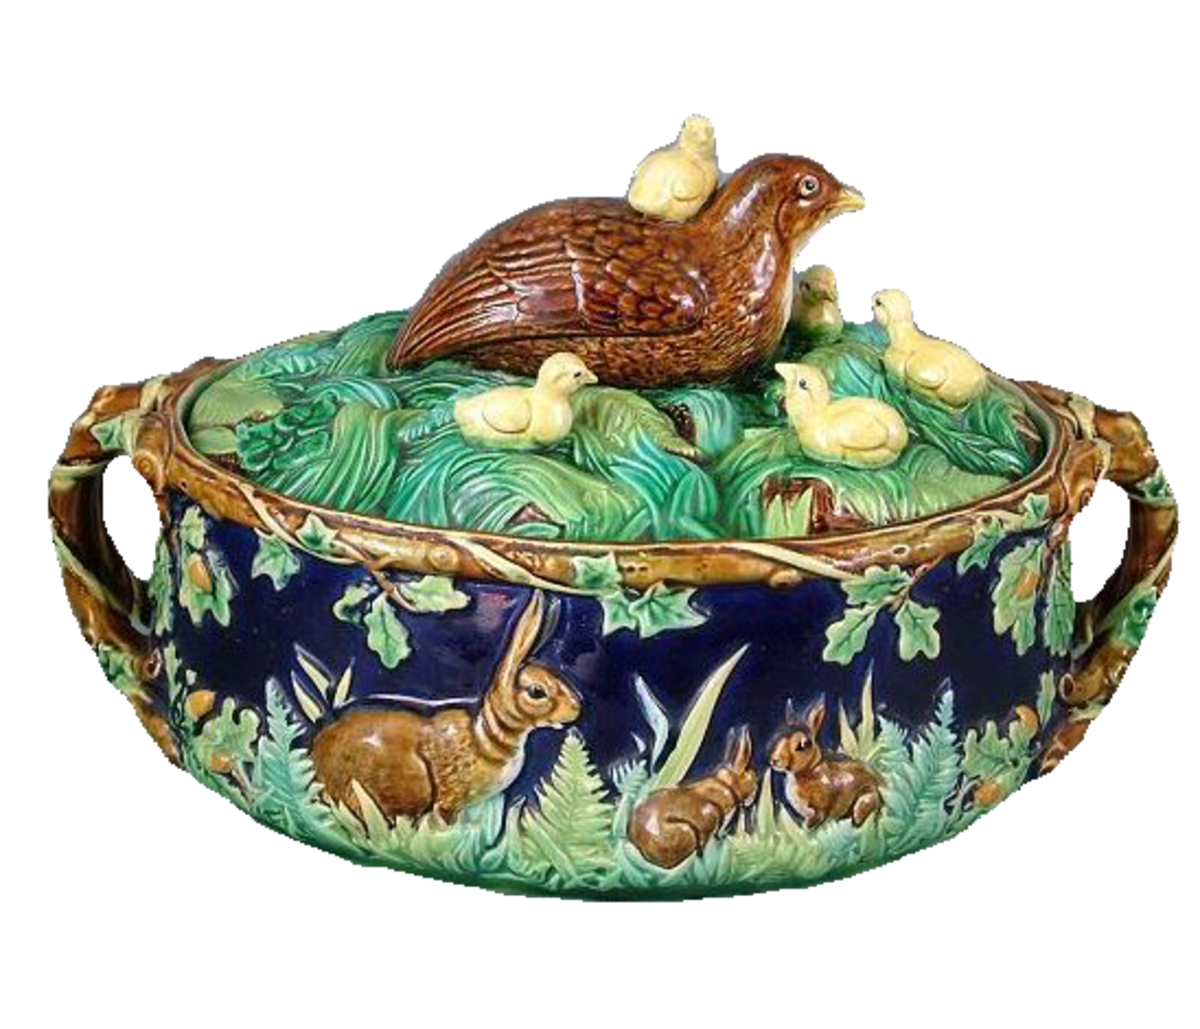 Antique Majolica Pottery Hubpages